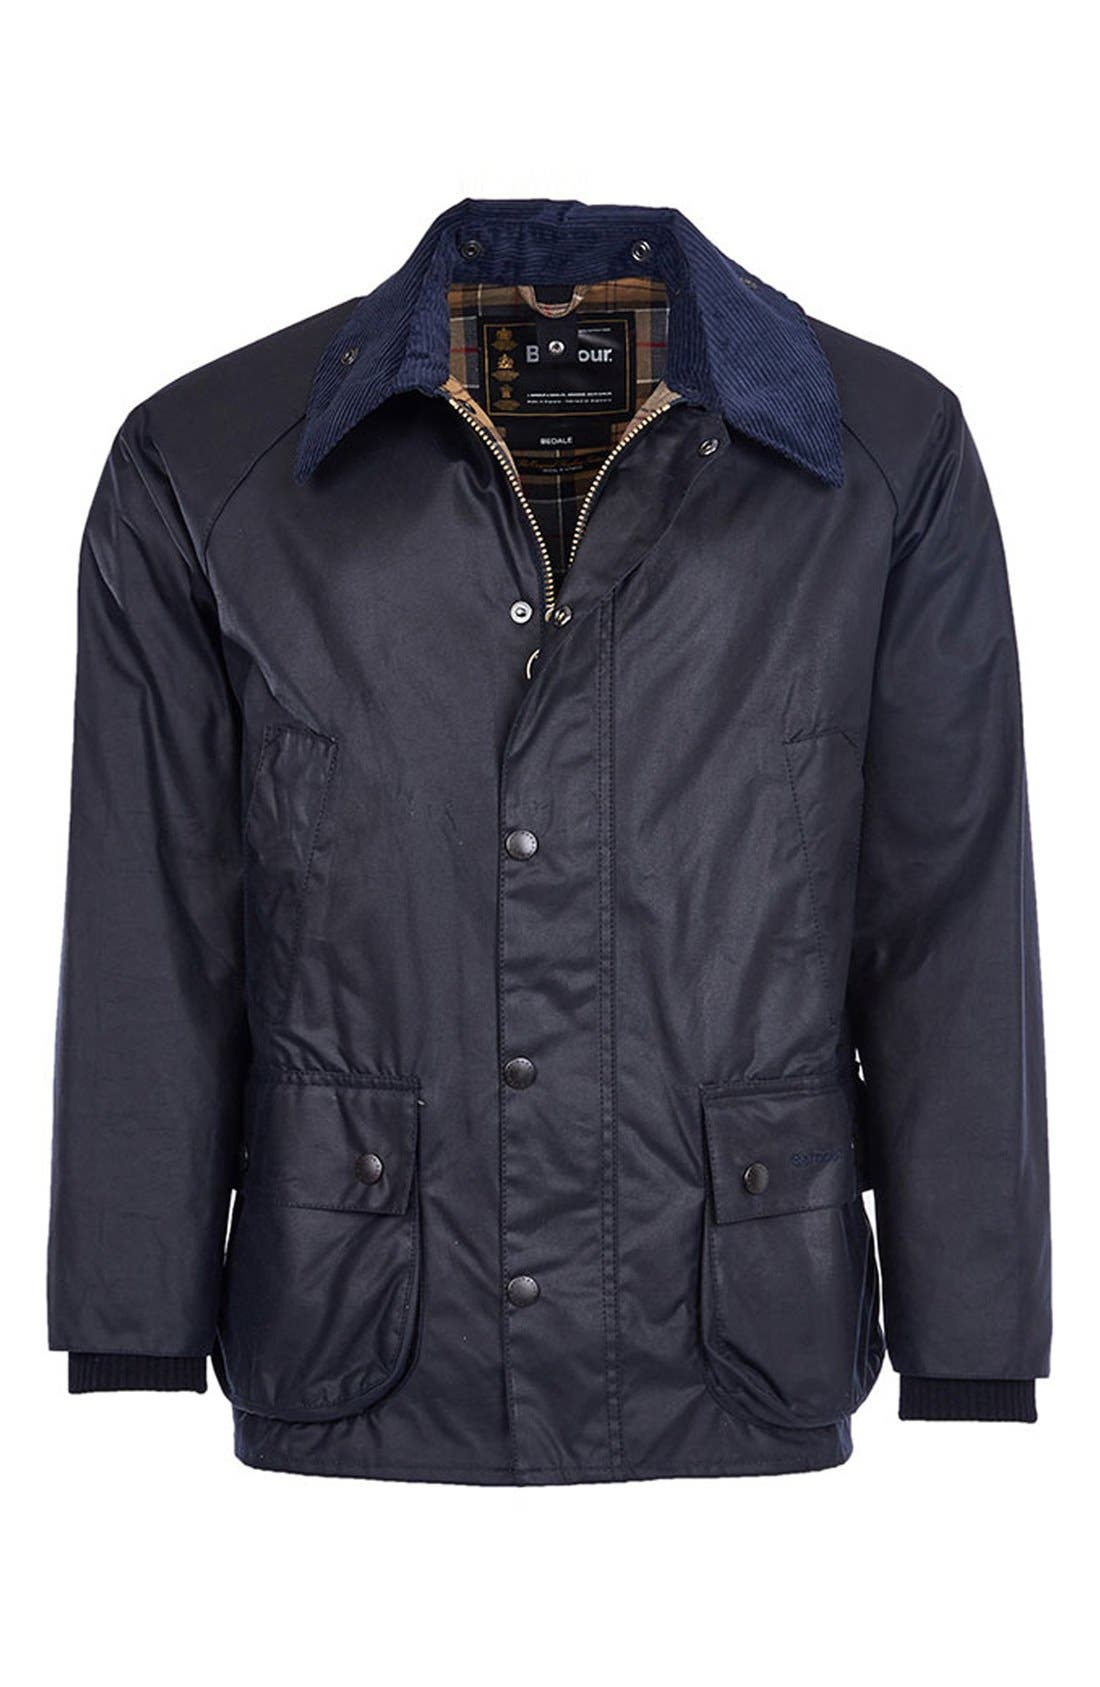 BARBOUR, 'Bedale' Regular Fit Waxed Cotton Jacket, Alternate thumbnail 5, color, NAVY